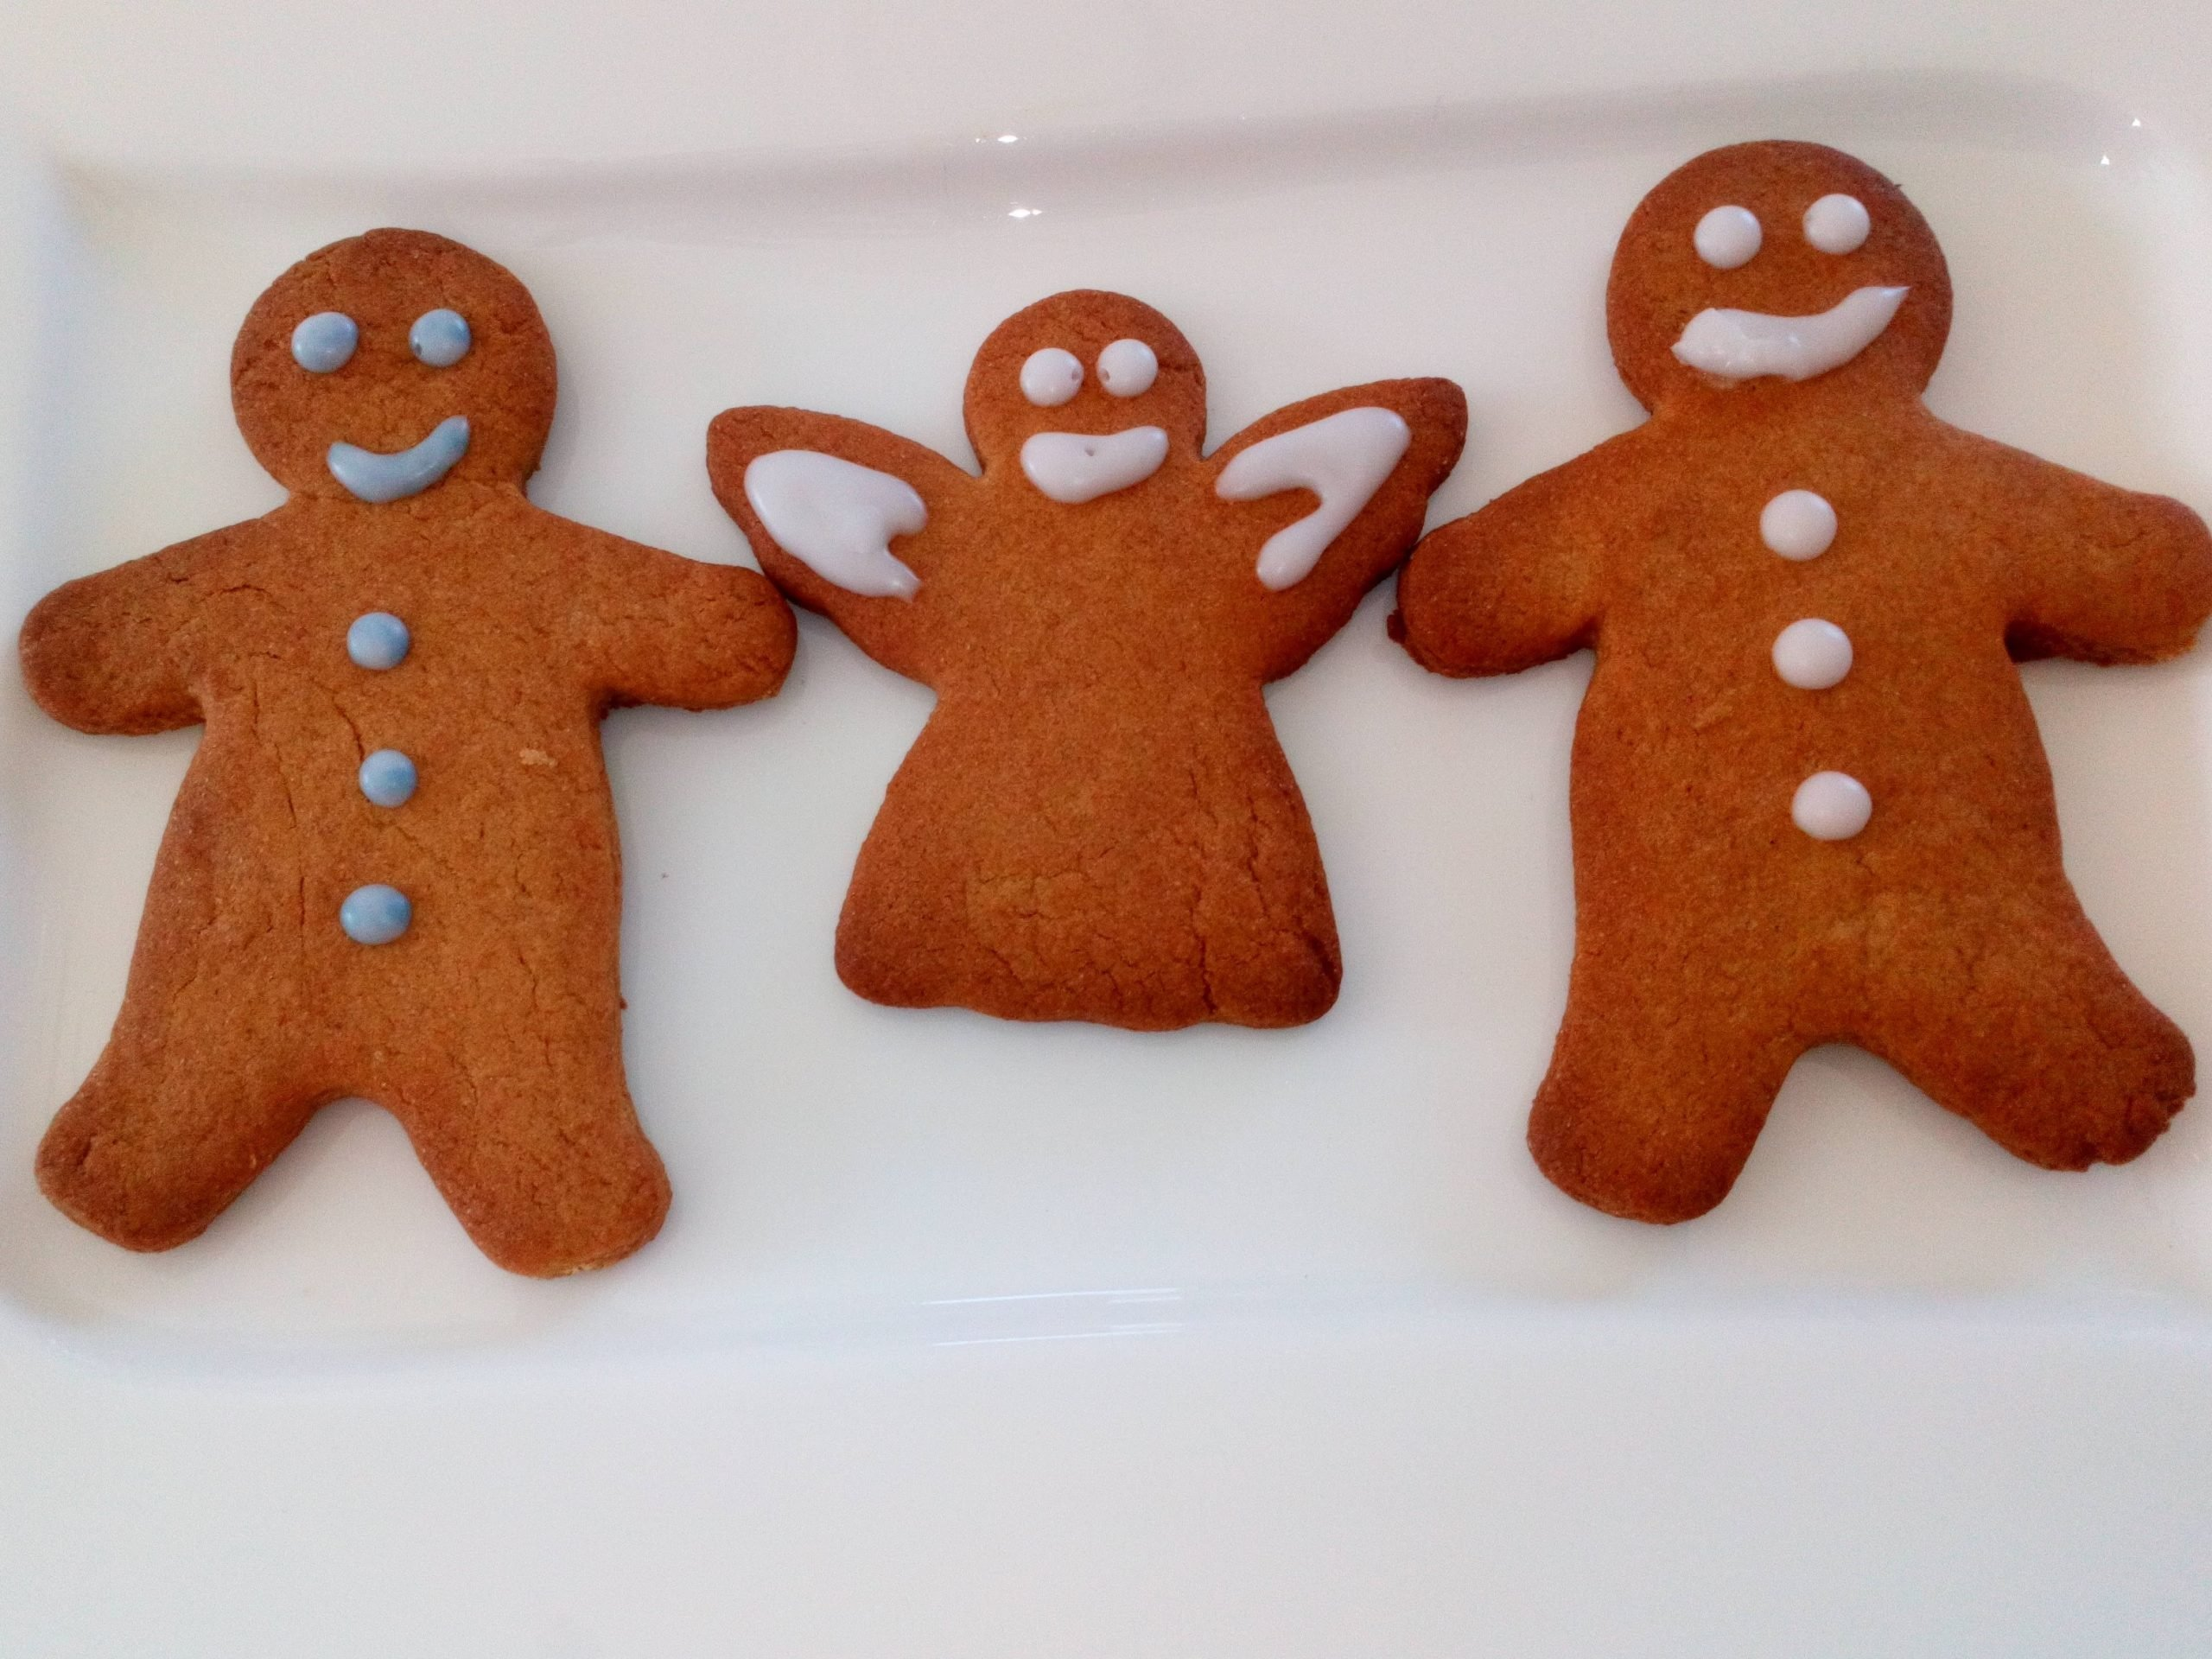 Gingerbread 4 to 3 ratio